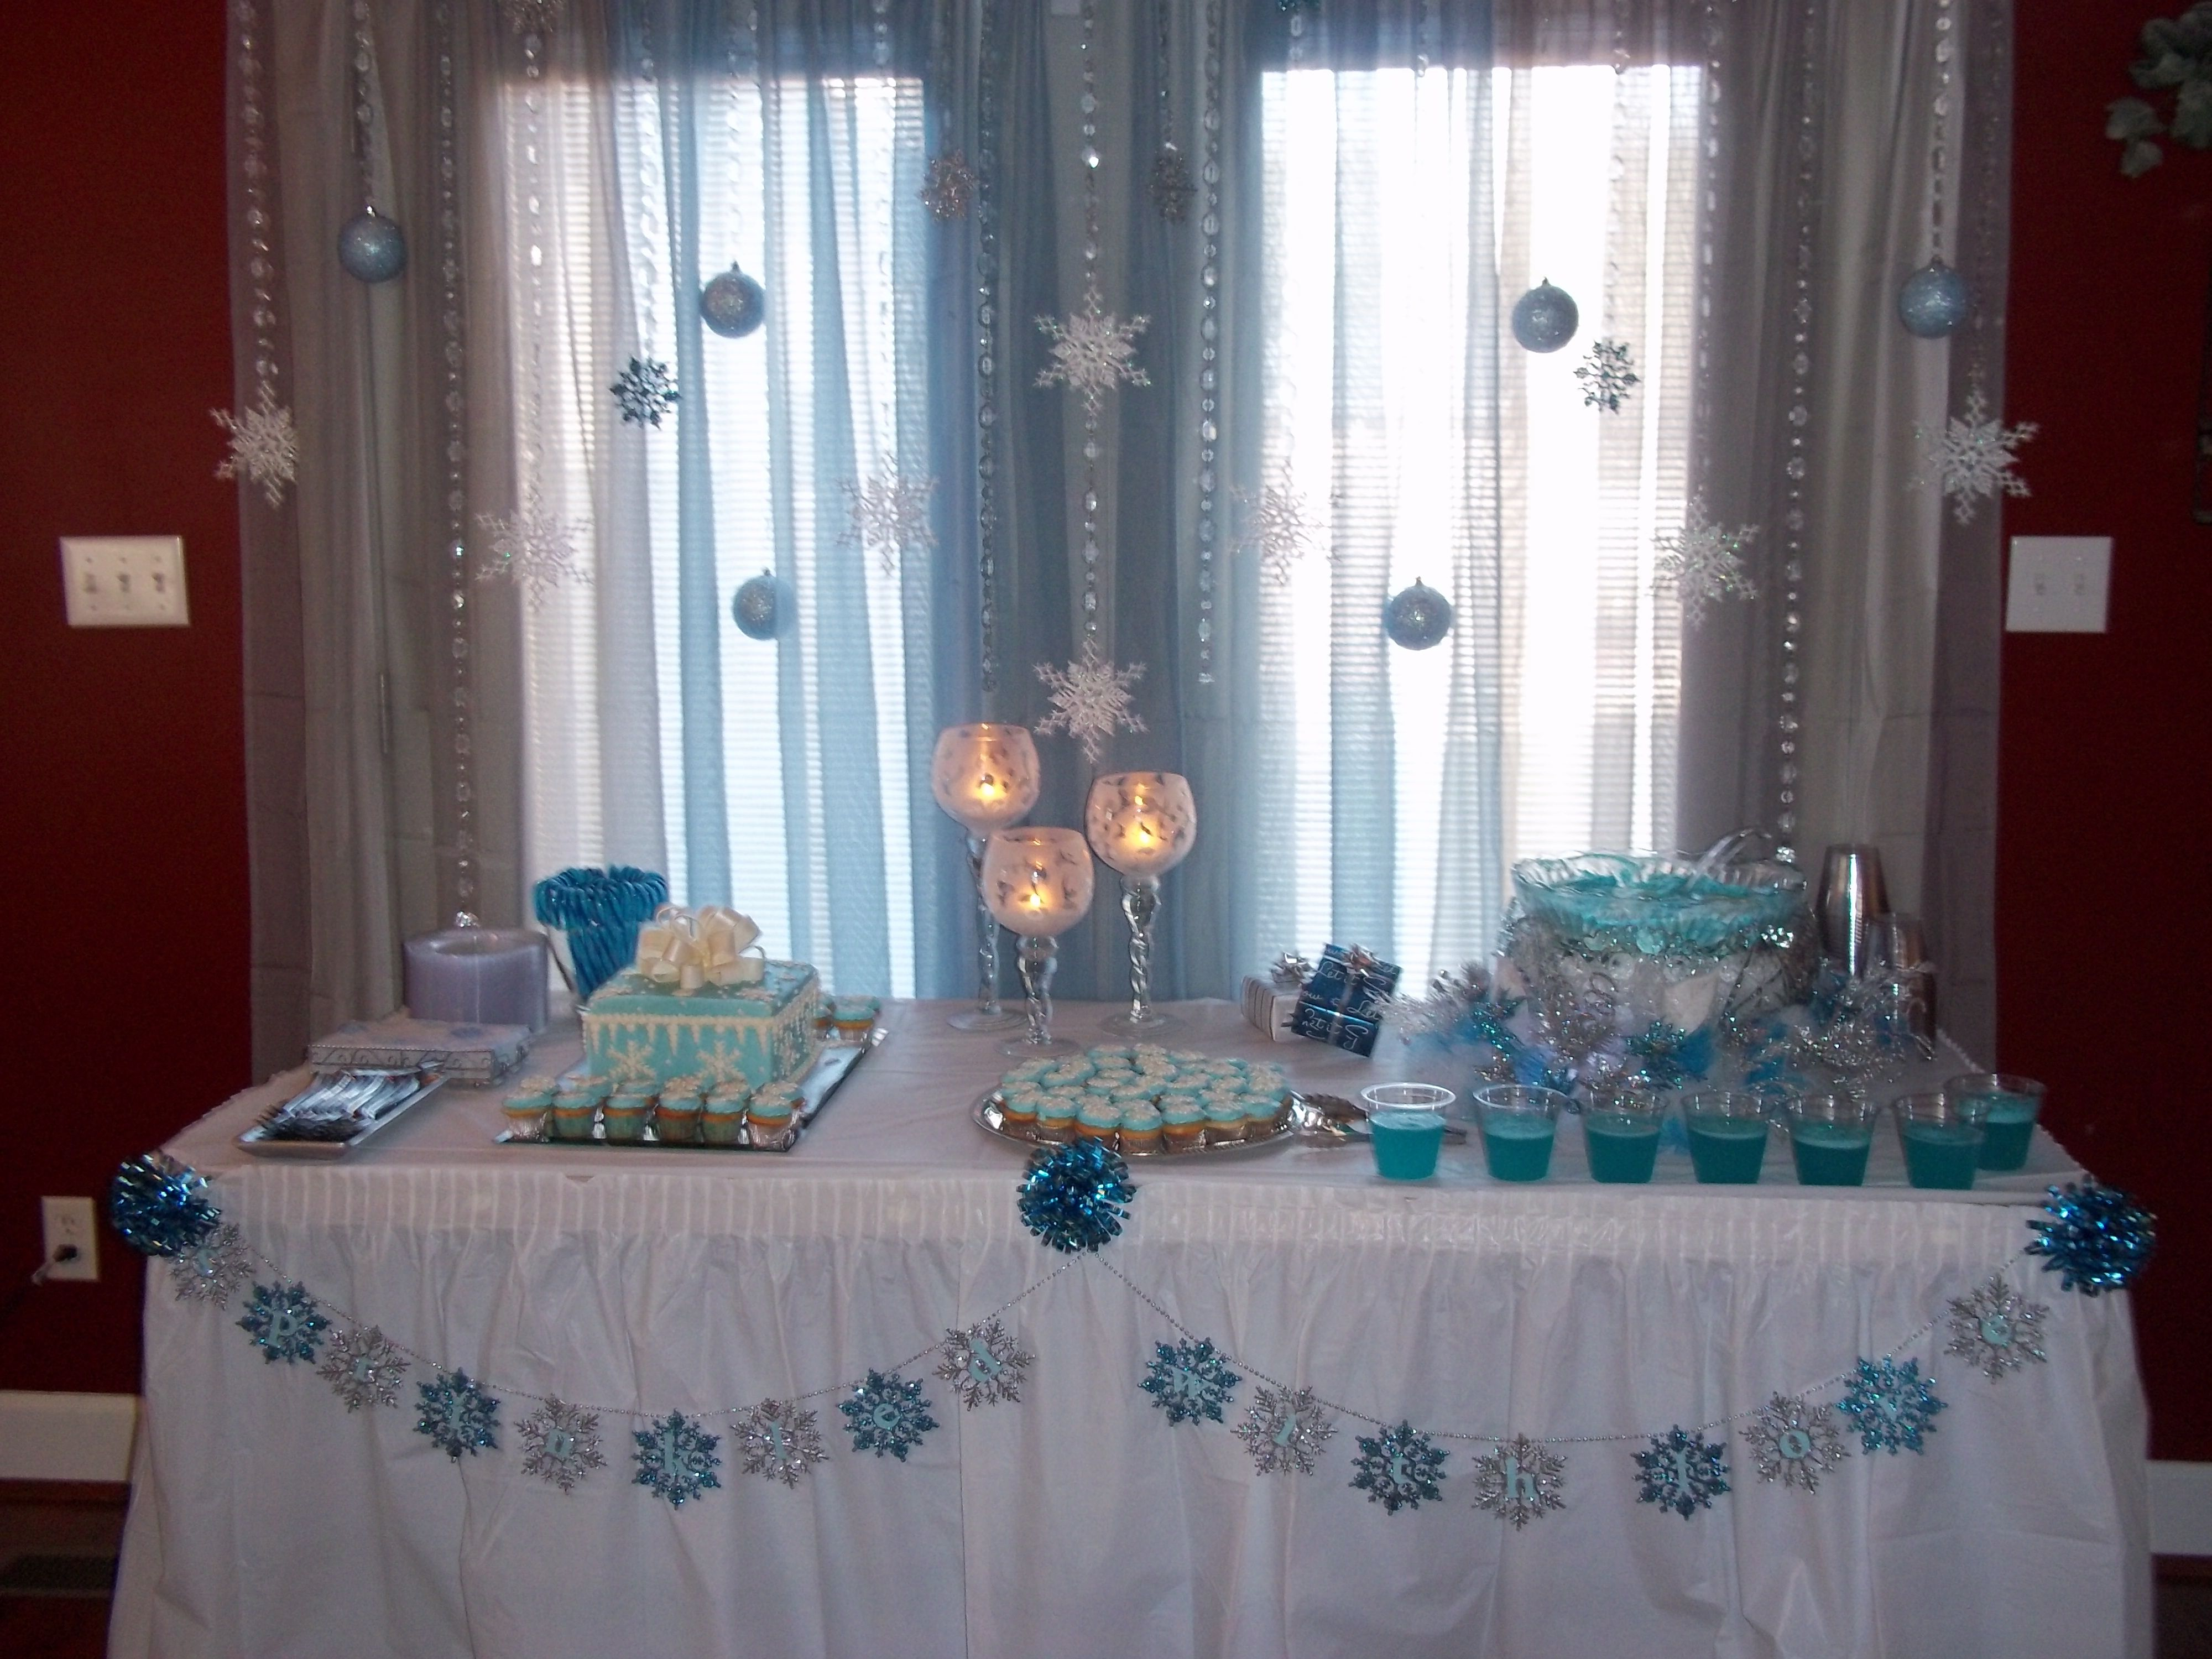 Cake And Punch Table With Images Holiday Snowflakes Punch